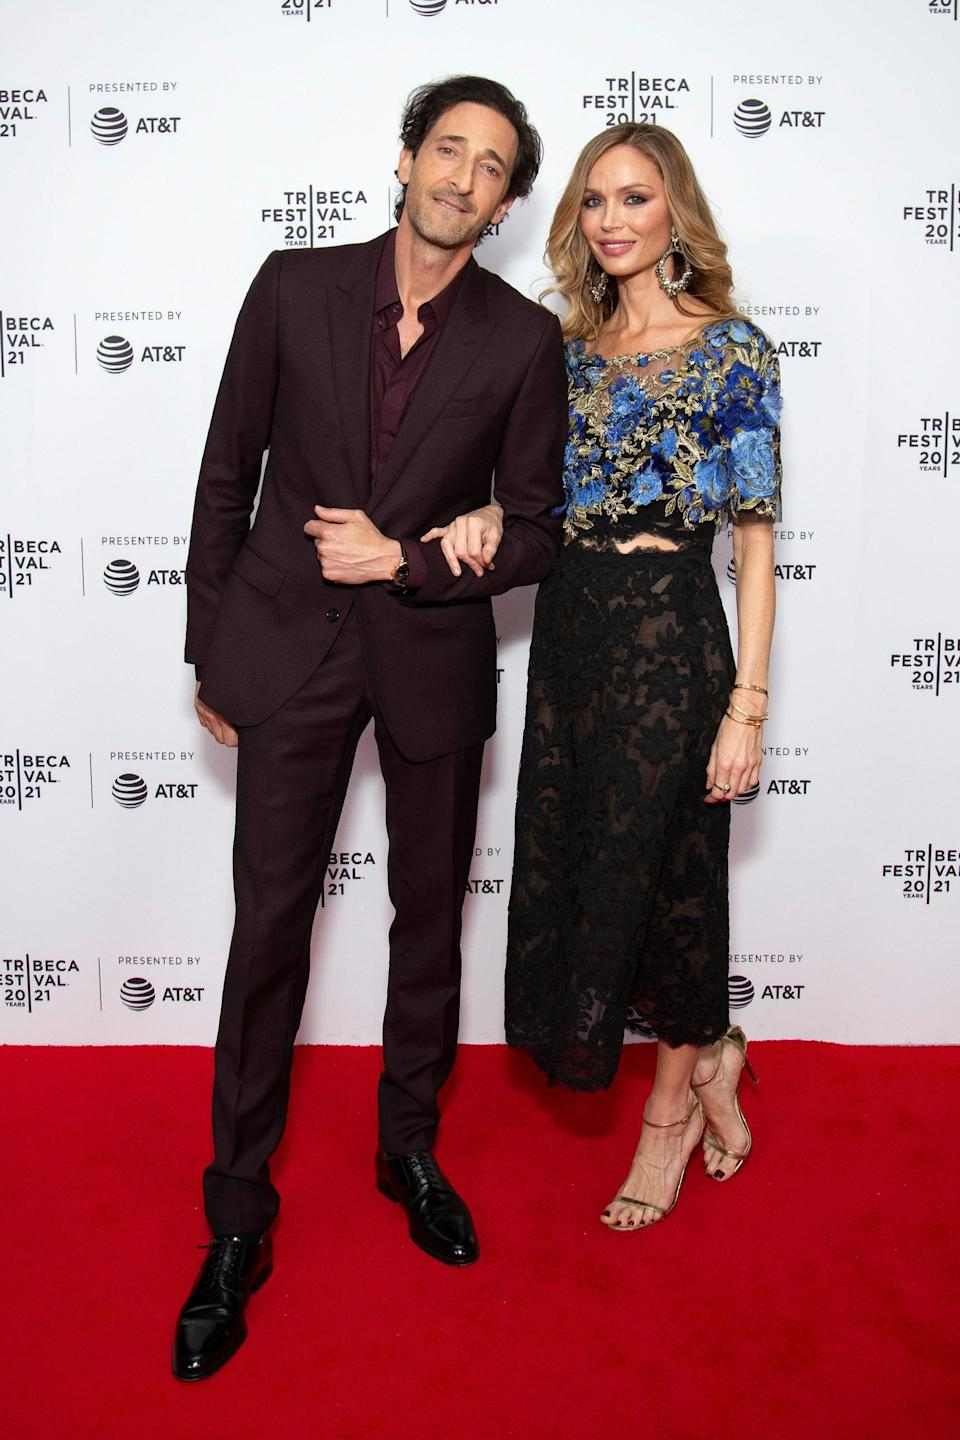 Adrien Brody and Georgina Chapman made their red carpet couple debut at the Tribeca Film Festival Saturday.